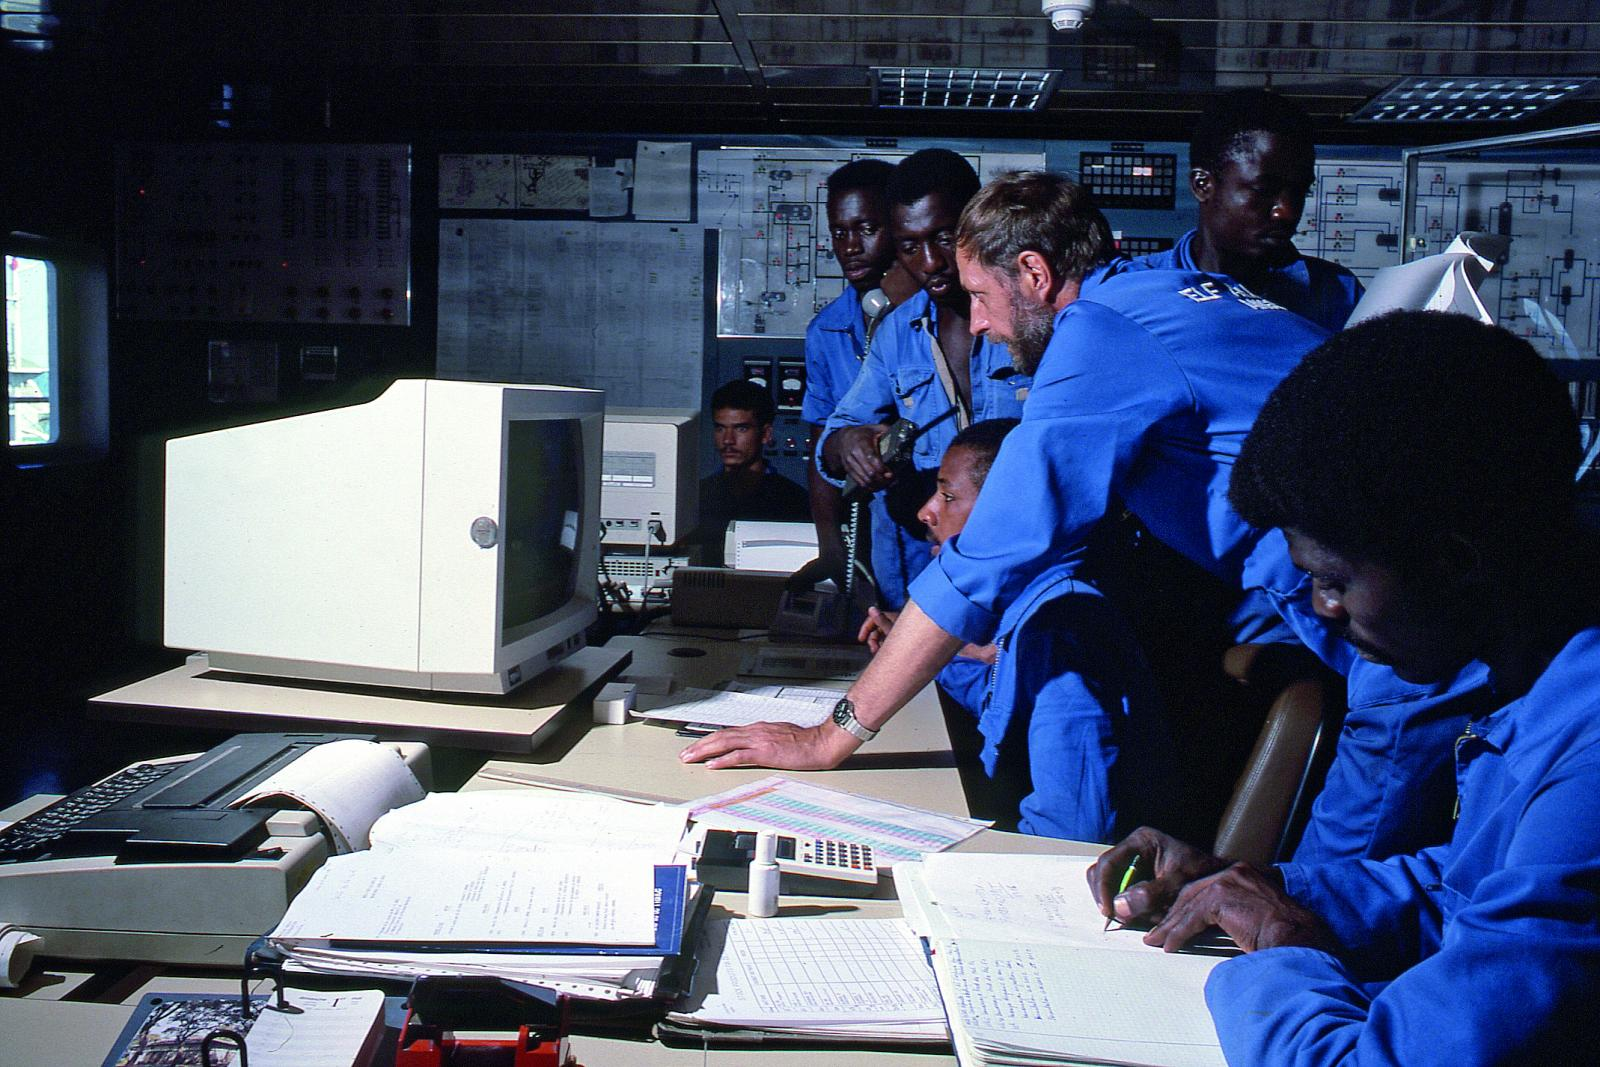 During the 1980s, the training center established at the base in Soyo played a major role in providing training to generations of technicians working offshore.